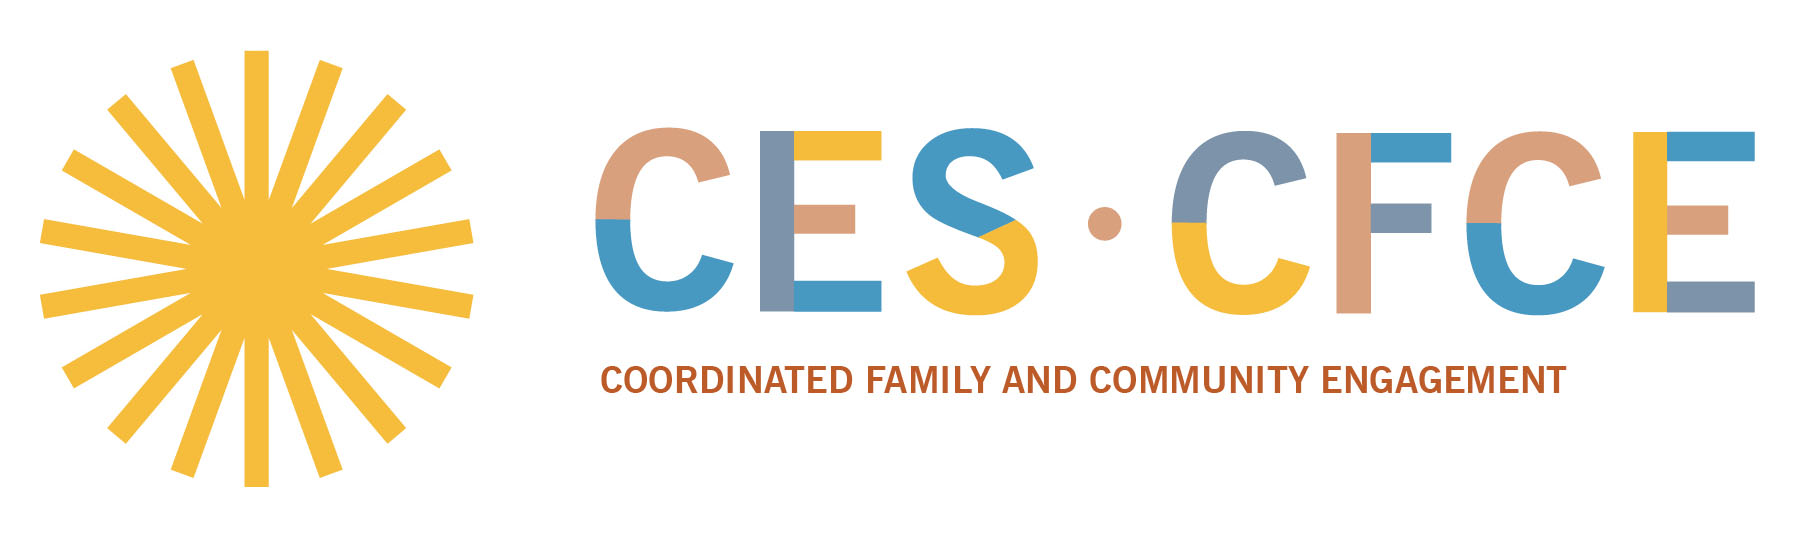 colorful text with CES starburst and text: CES CFCE: Coordinated Family and Community Engagement